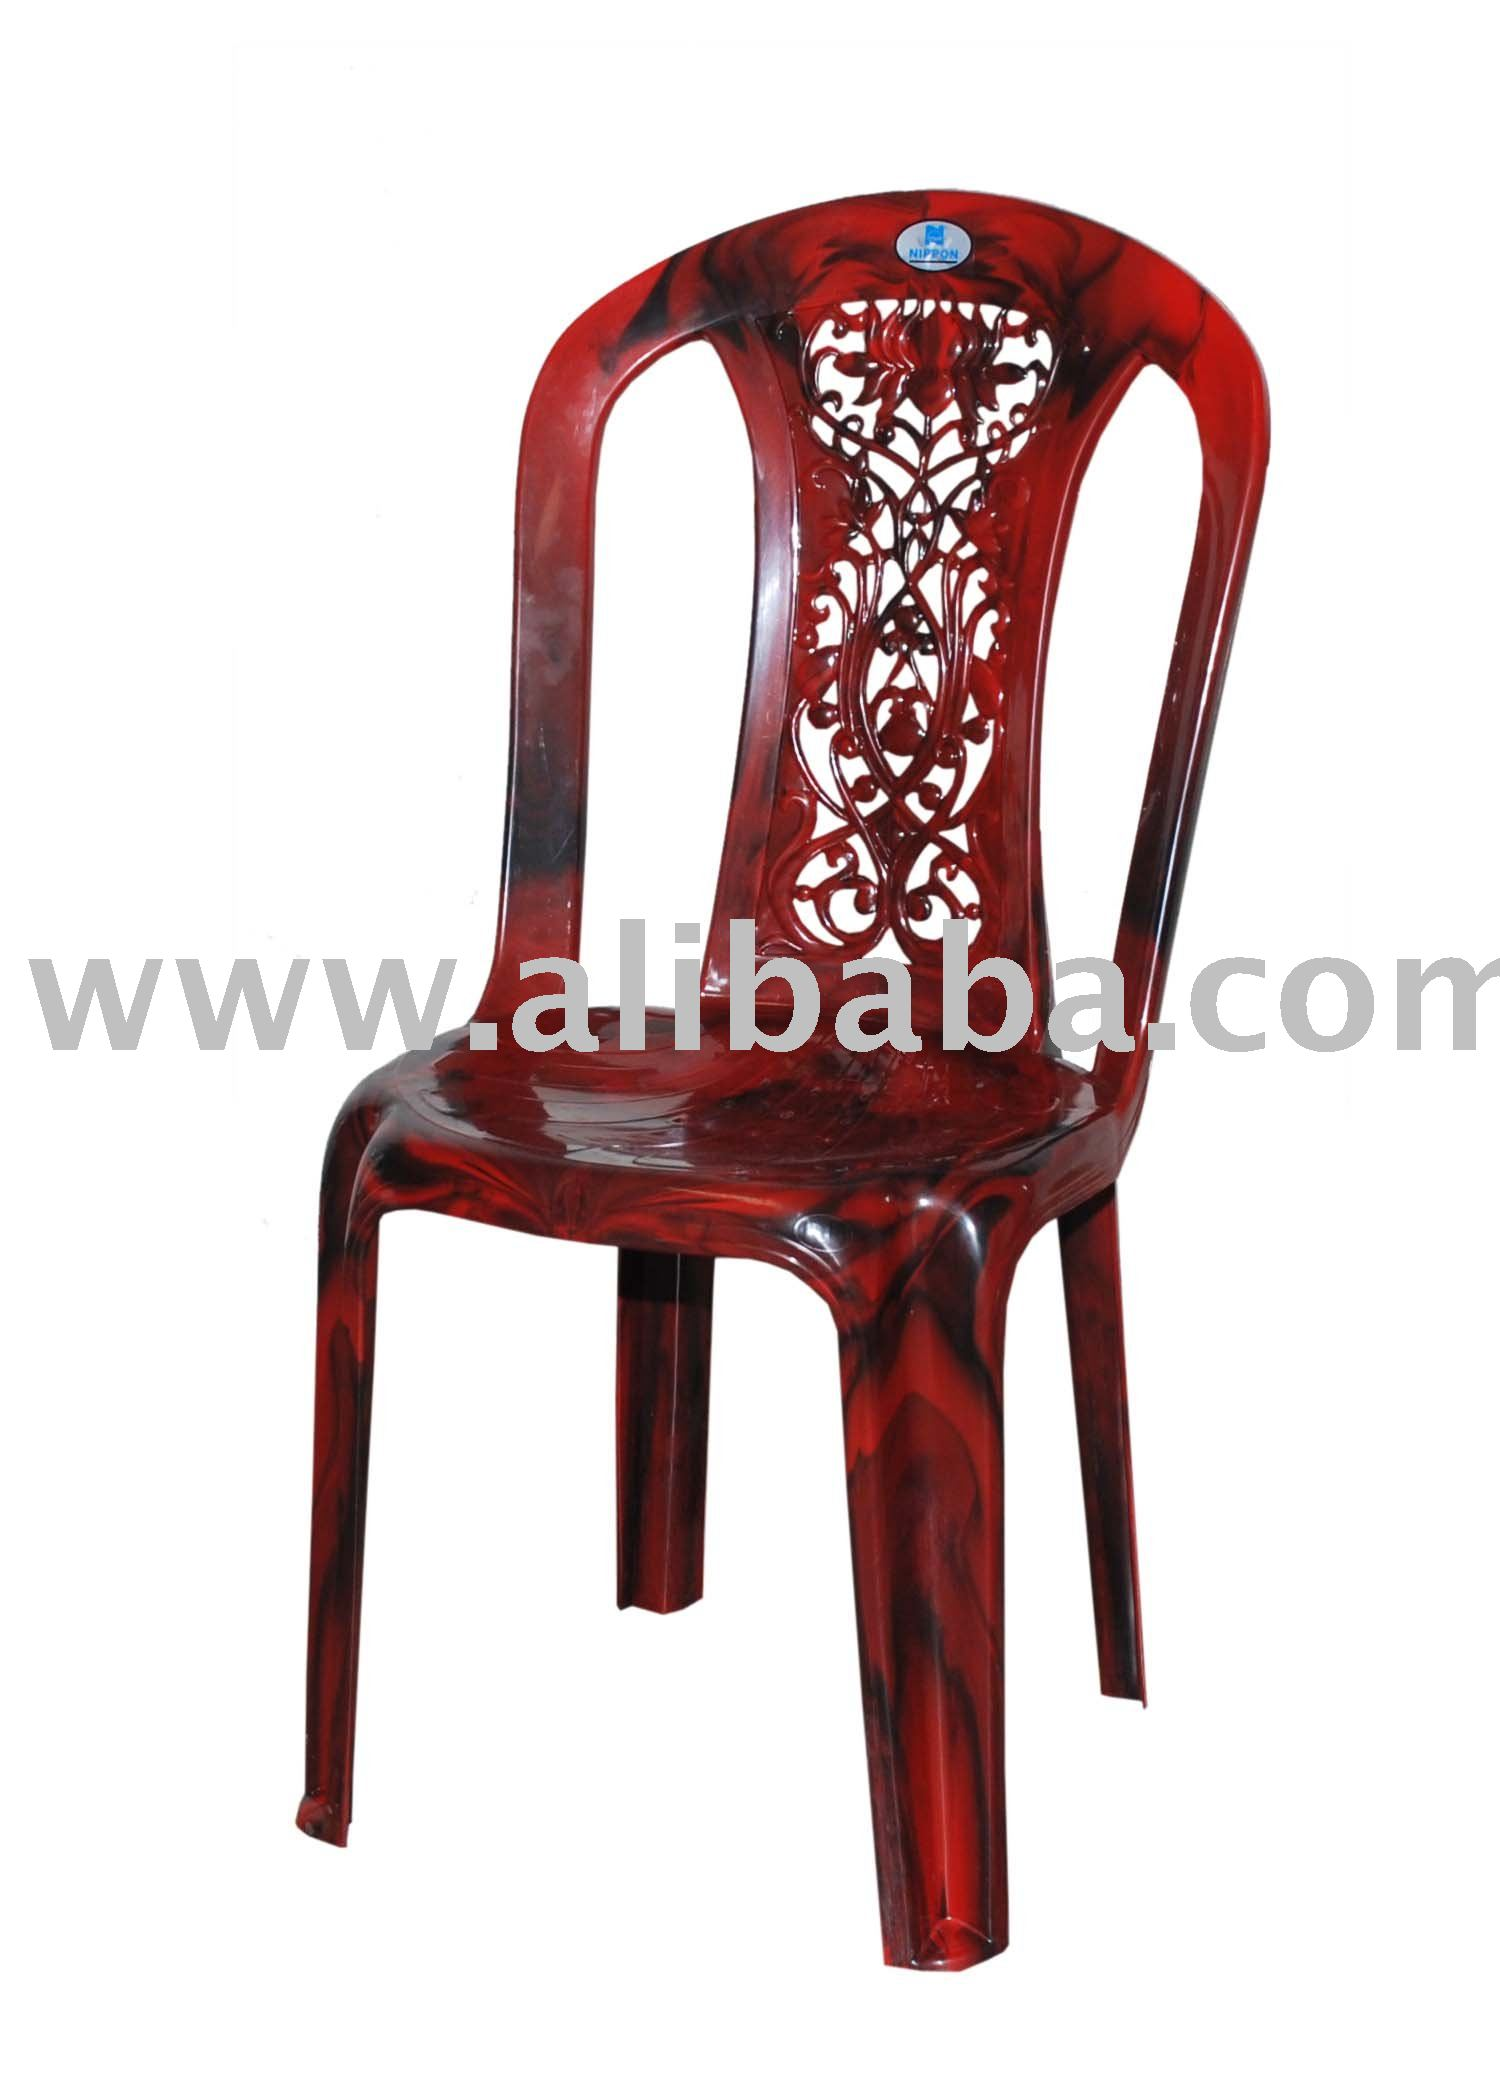 Plastic Chair Armless Buy Modern Plastic Chairs Product on